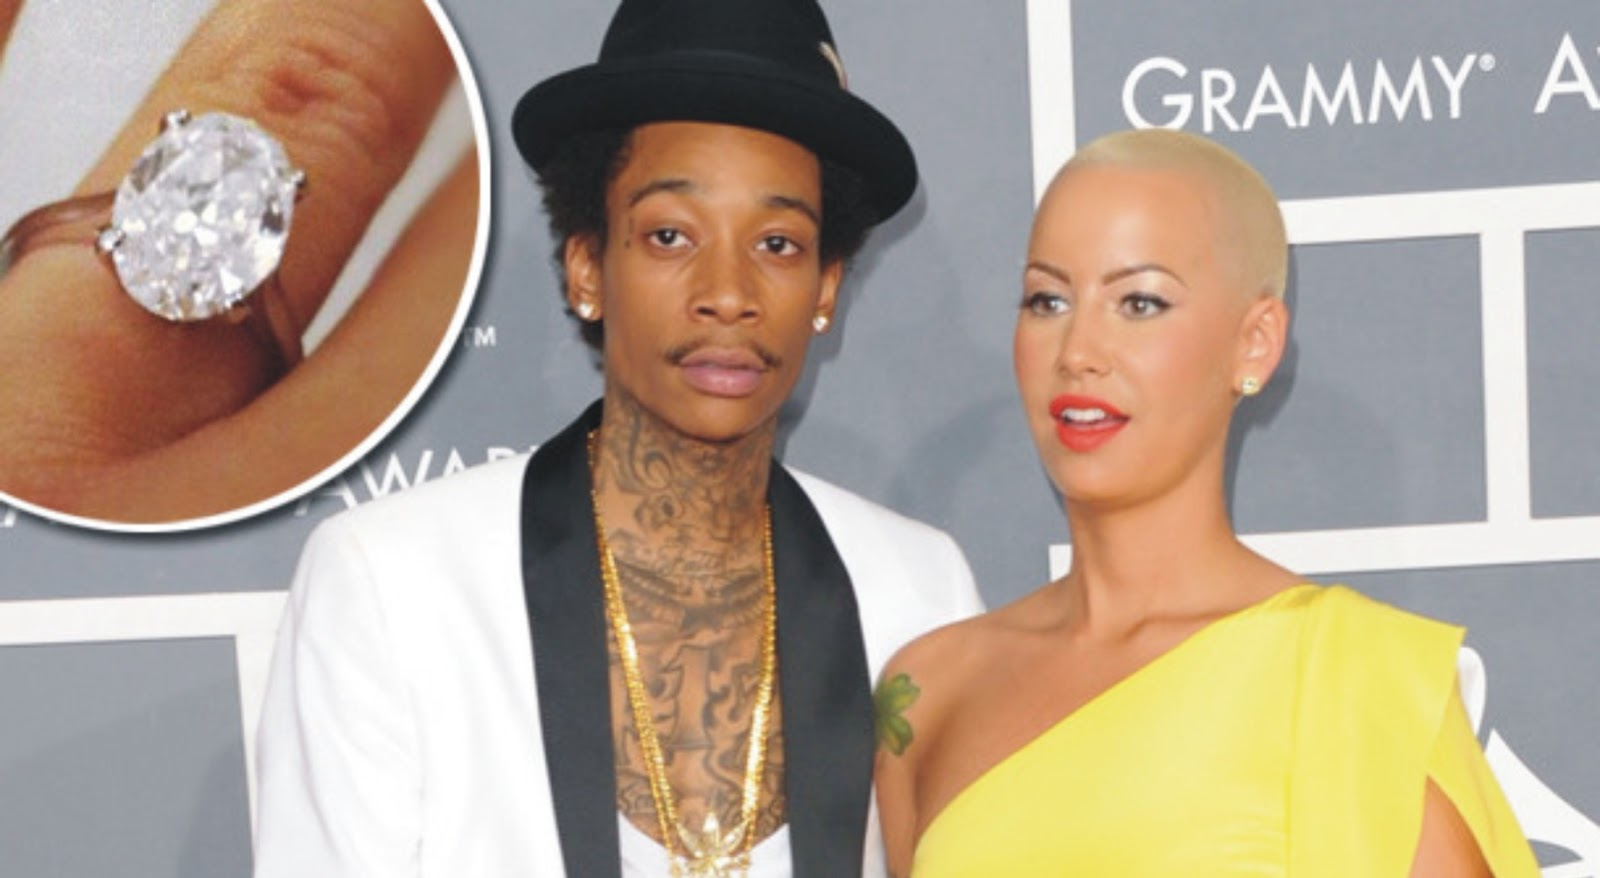 Who is wiz khalifa dating now